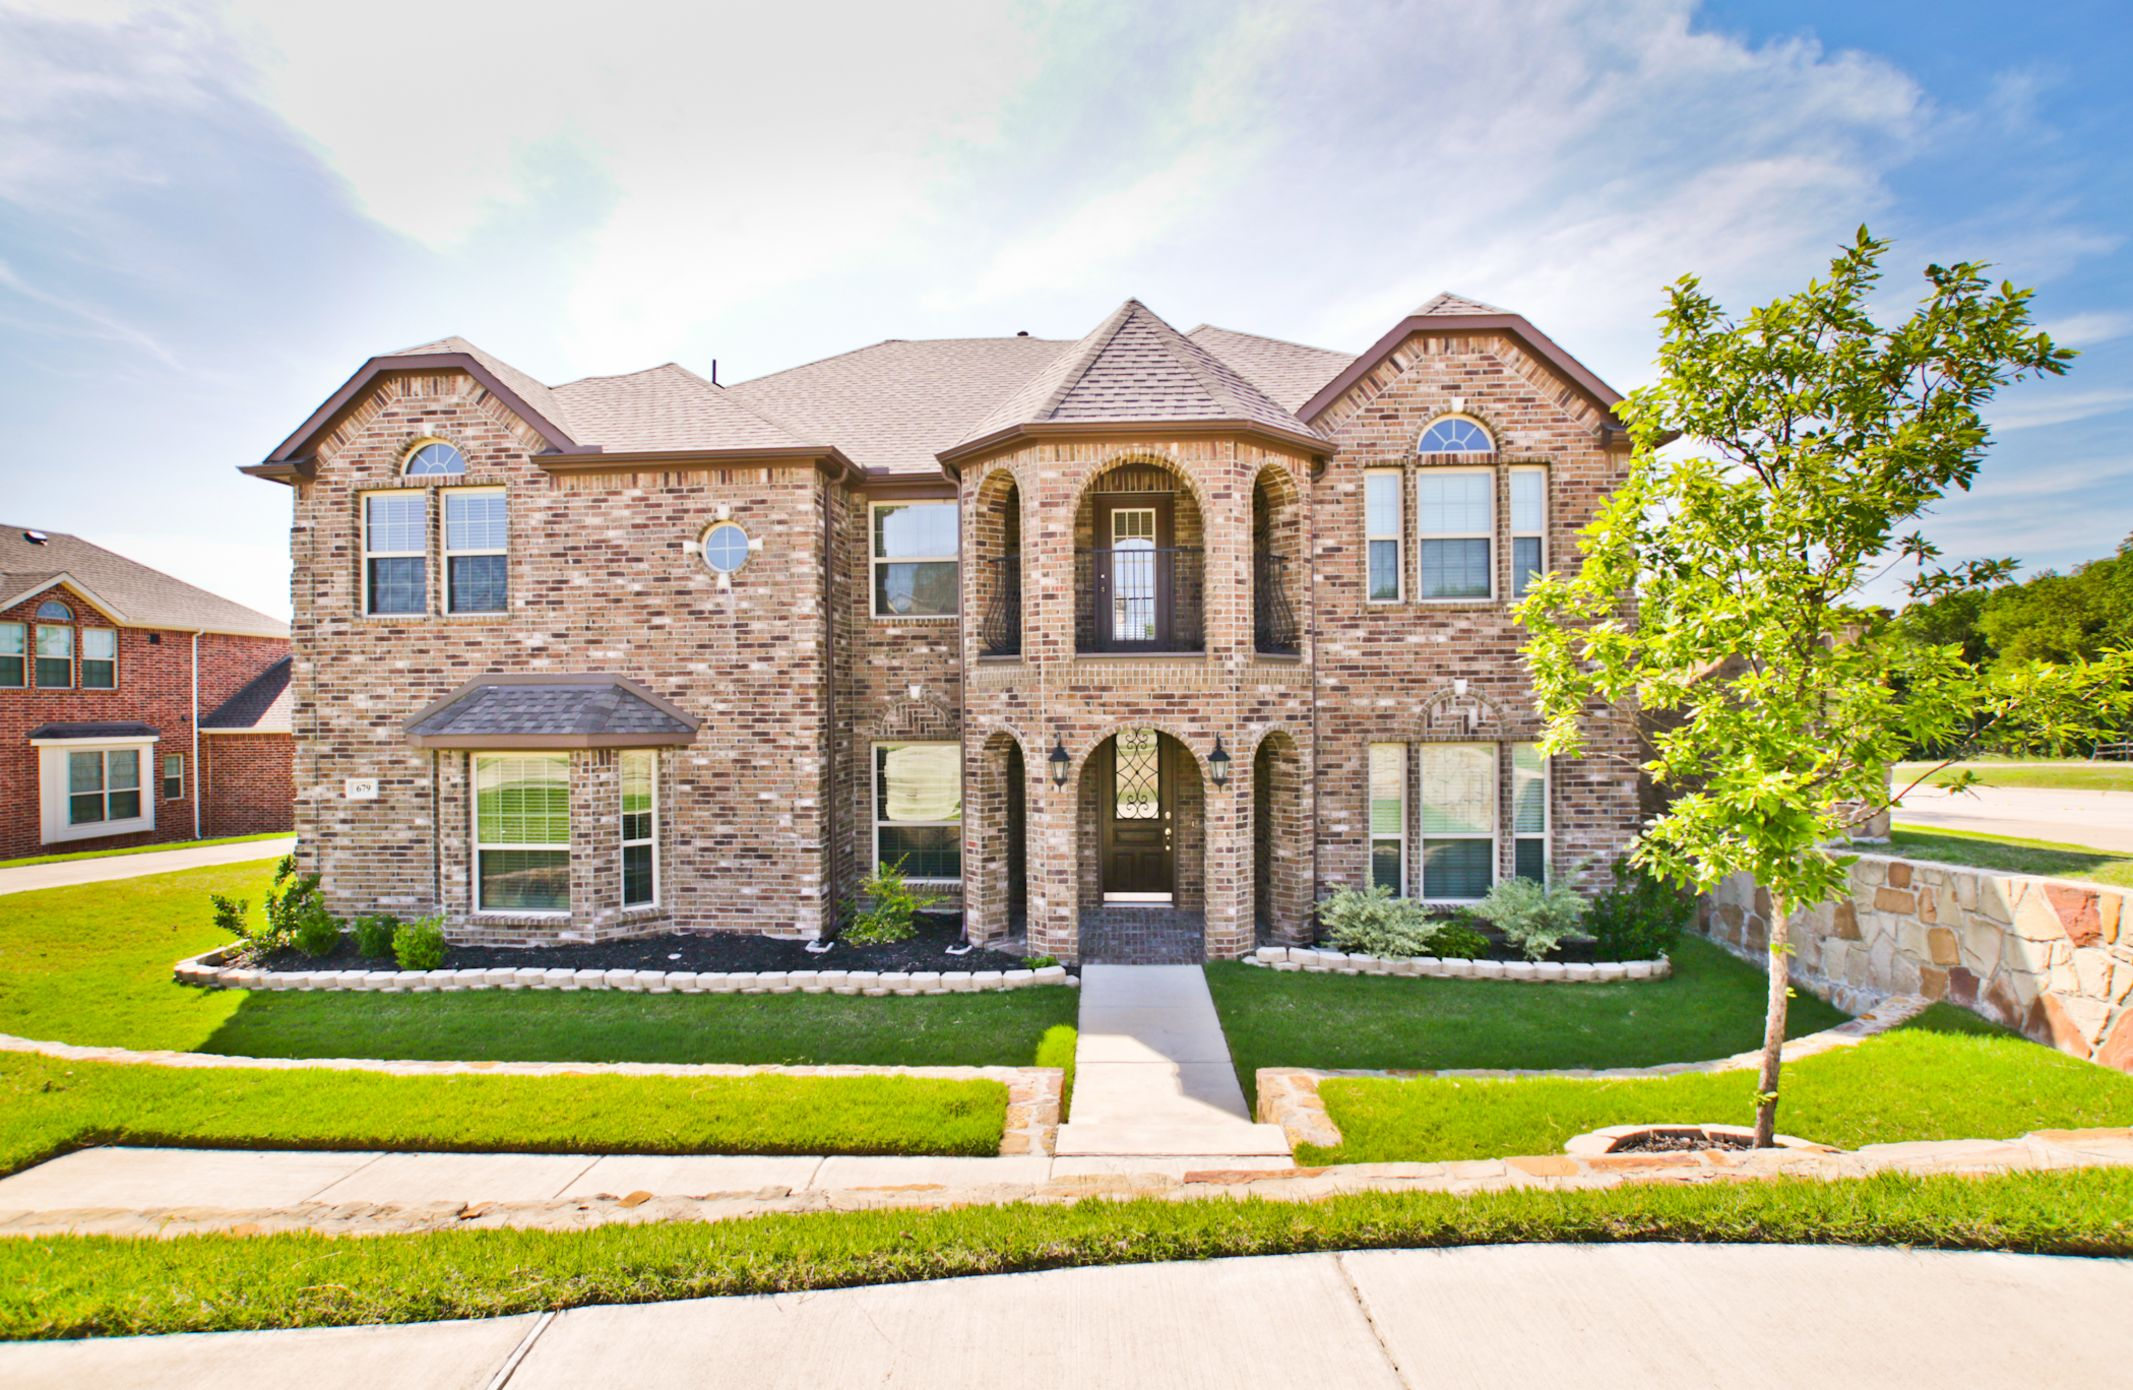 Beautiful Custom Built Home In Rockwall, Tx - Welcome To 679 Princeton Way, Rockwall, Tx